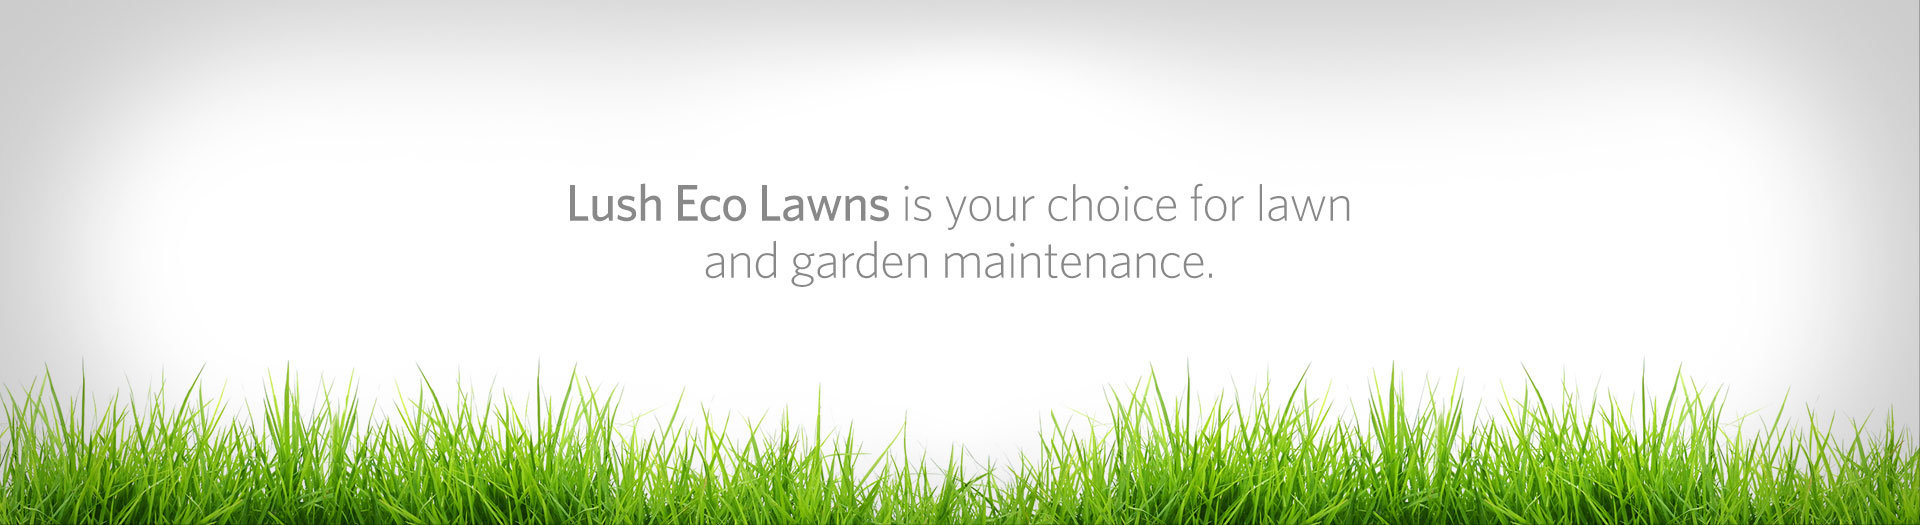 Lush Eco Lawns | We are a full service lawn care, gardening